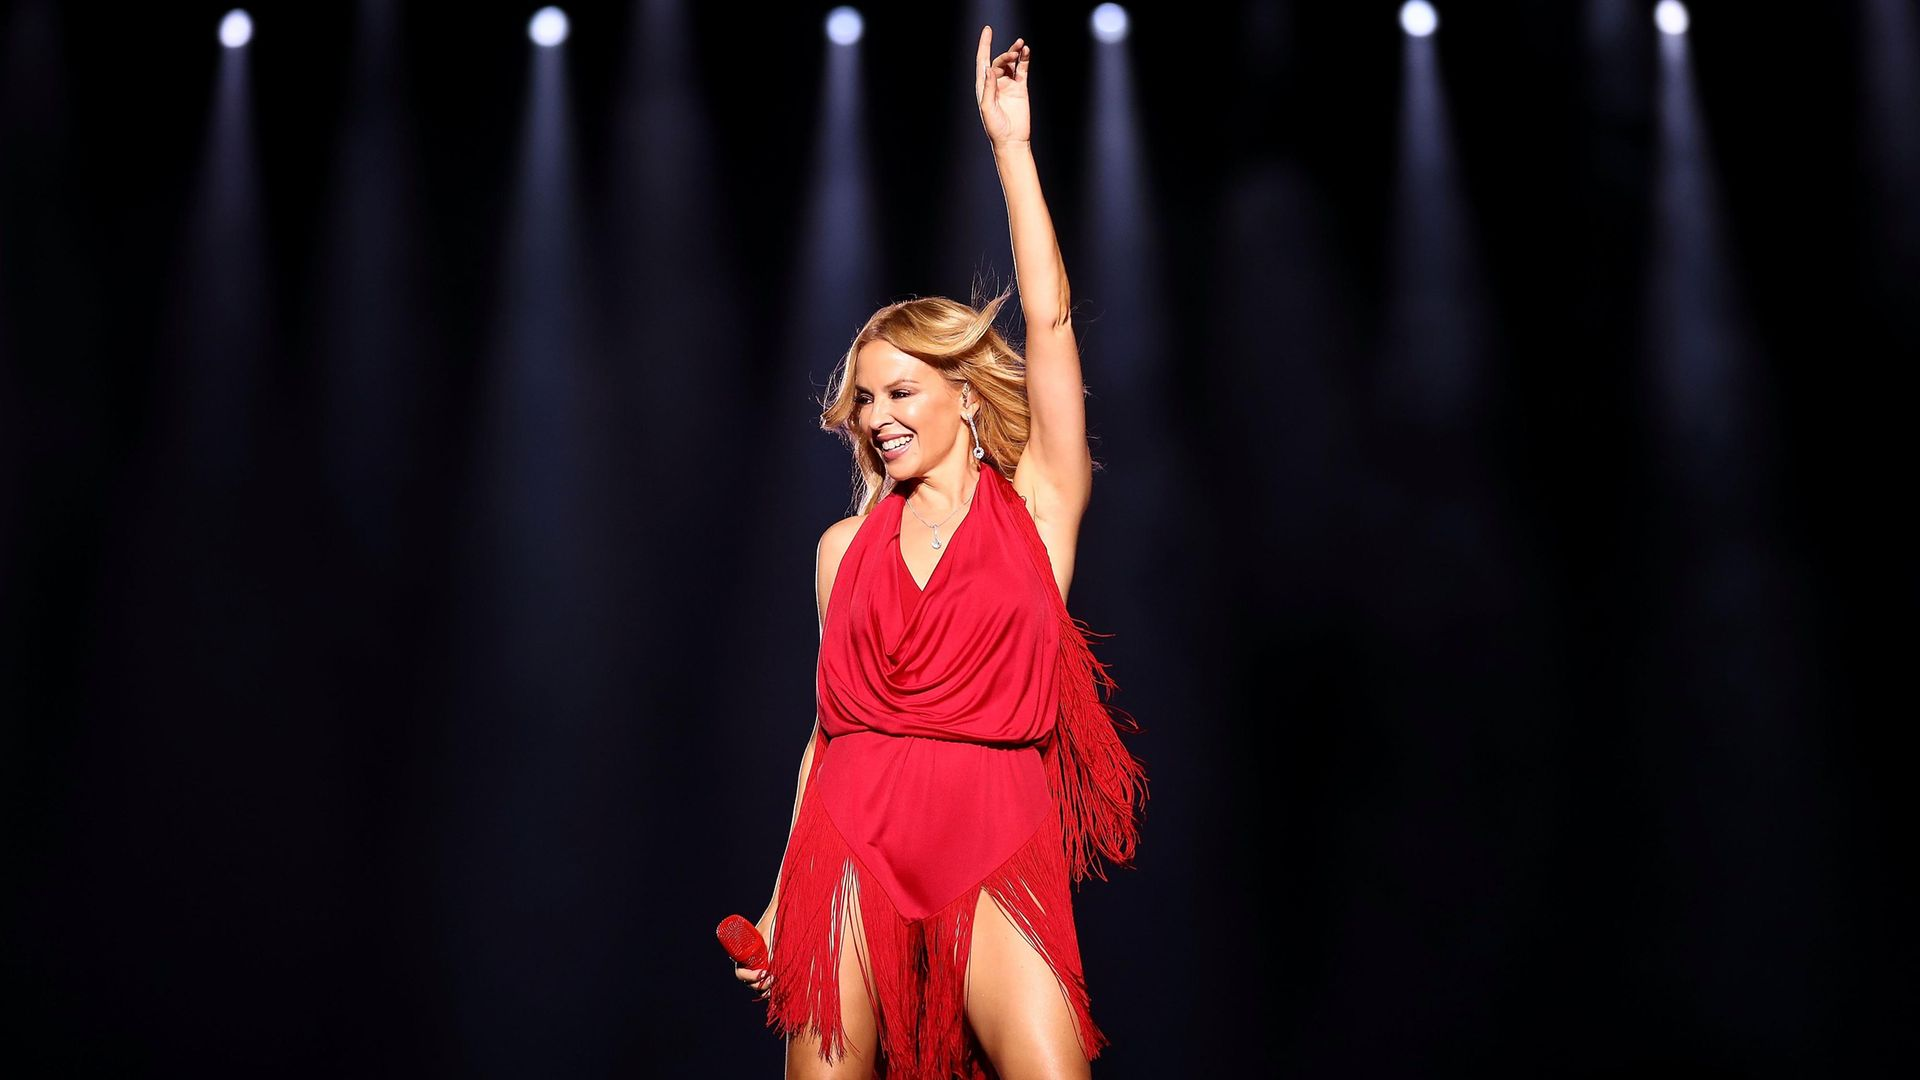 Defying Expectations: Kylie Minogue on stage in Singapore in 2016 - Credit: Getty Images